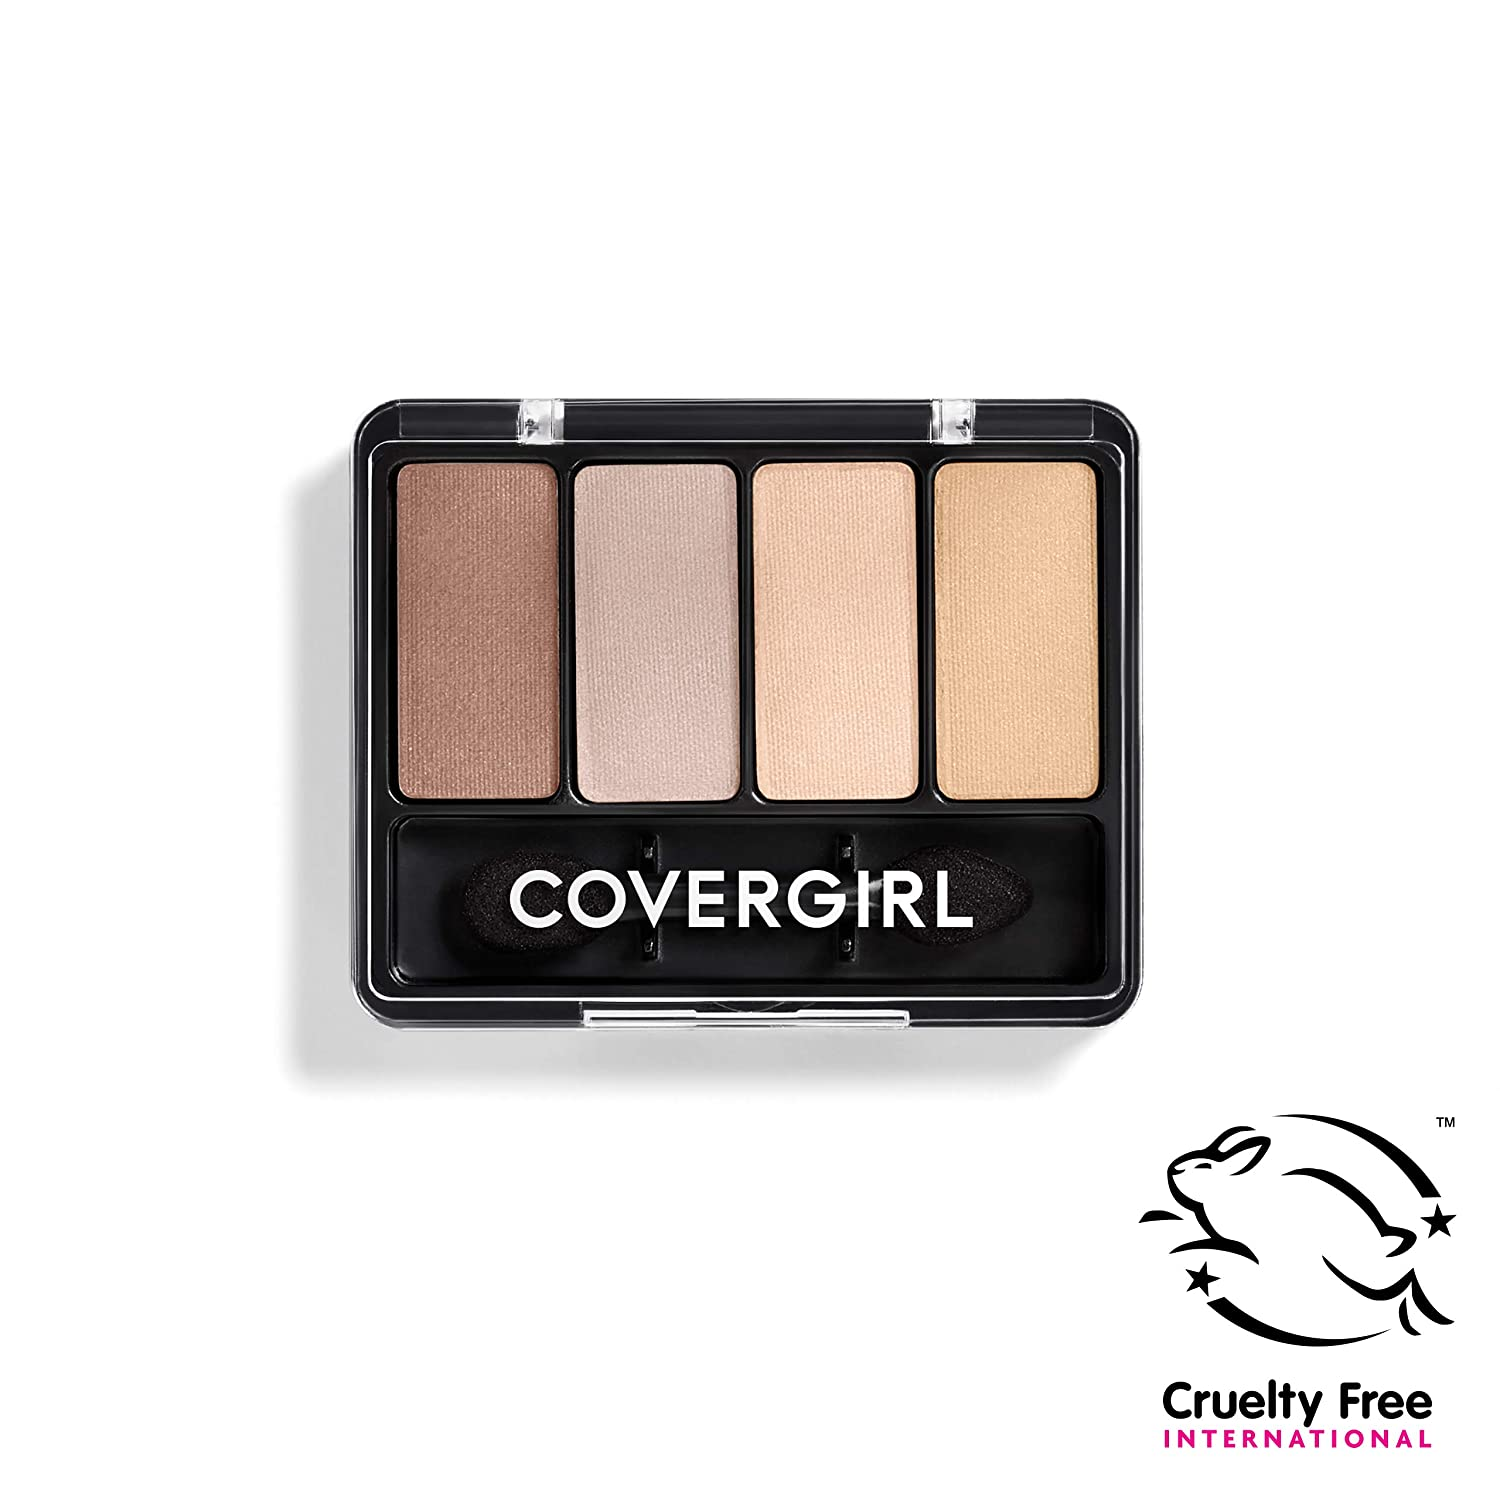 Covergirl Eye Enhancers Eyeshadow Kit, Sheerly Nudes, 4 Colors